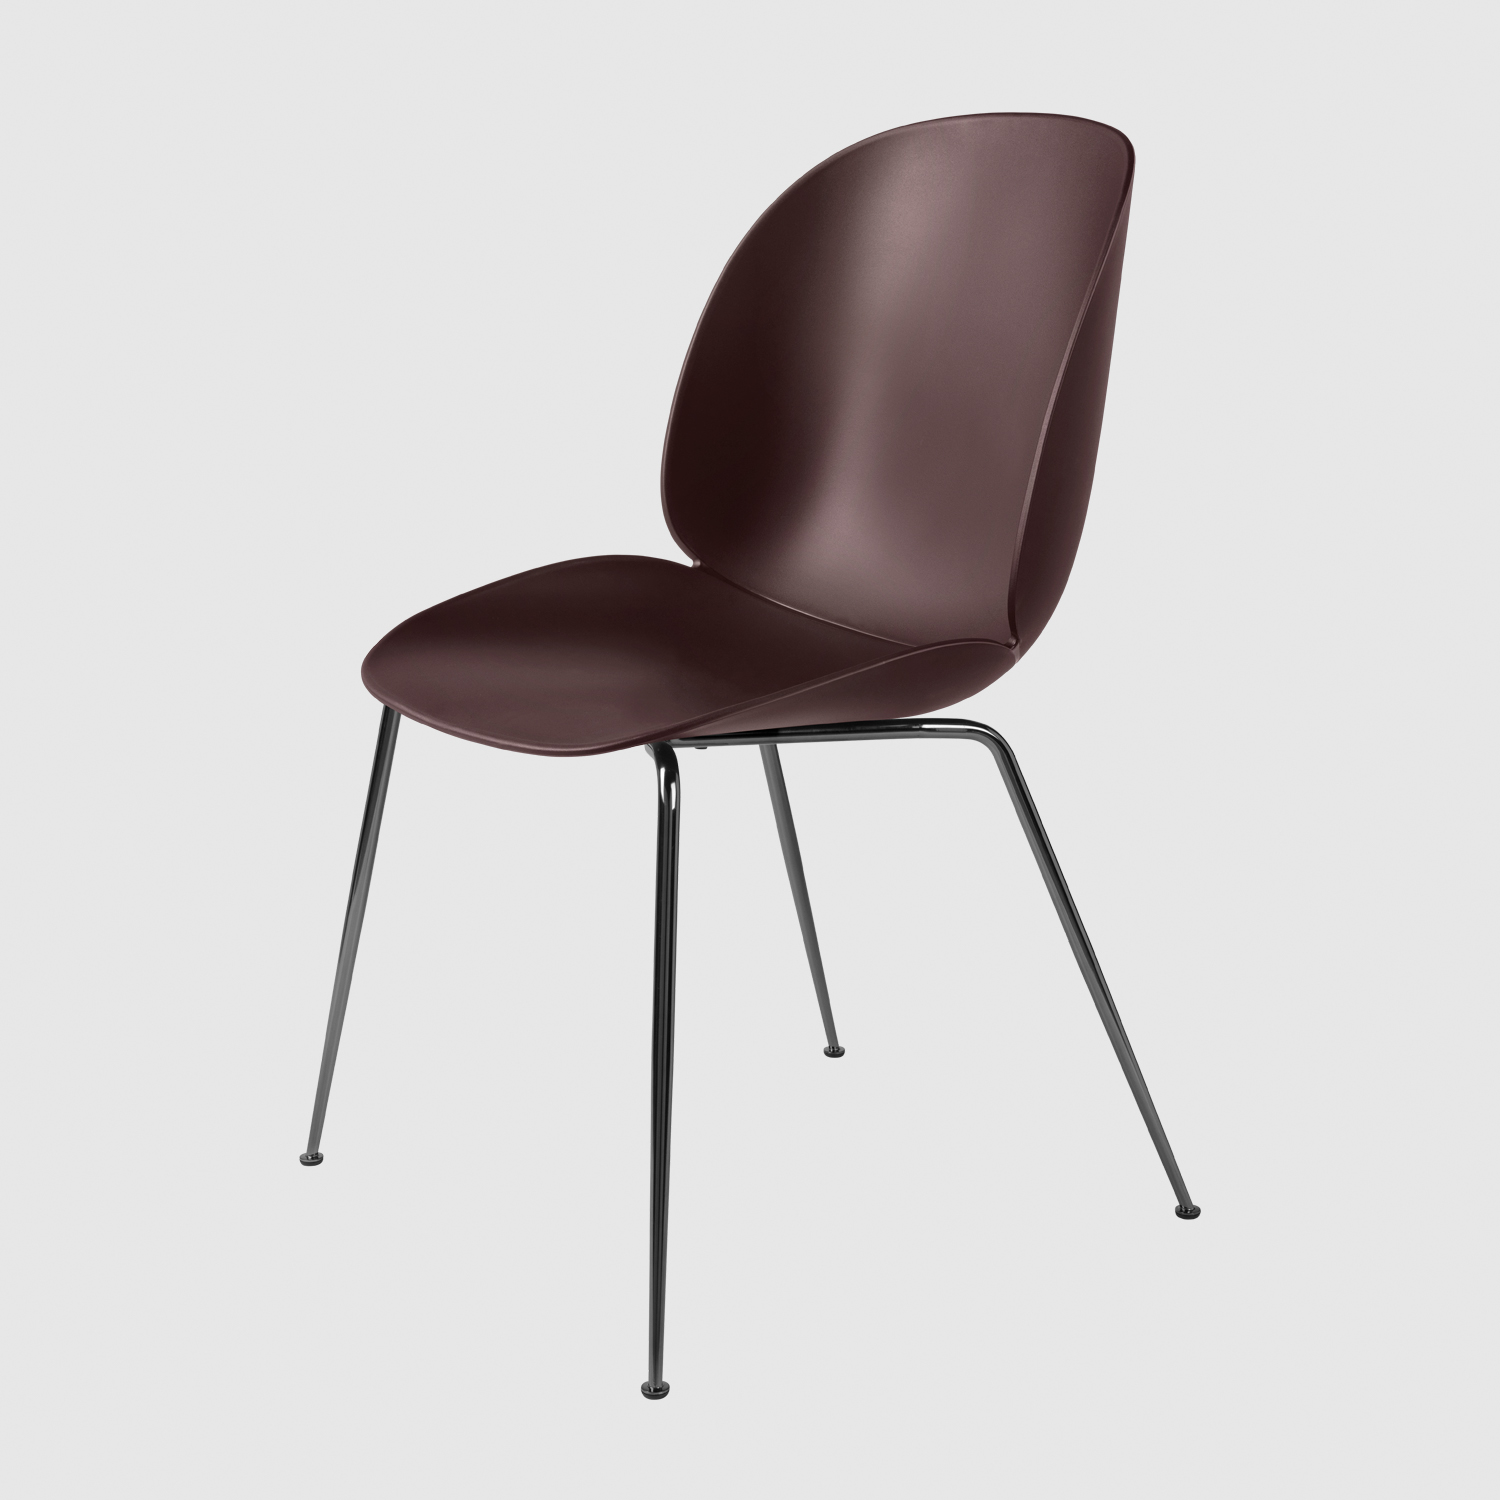 Beetle_DiningChair_Conic_Unupholstered_BlackChrome_DarkPink_Front.jpg